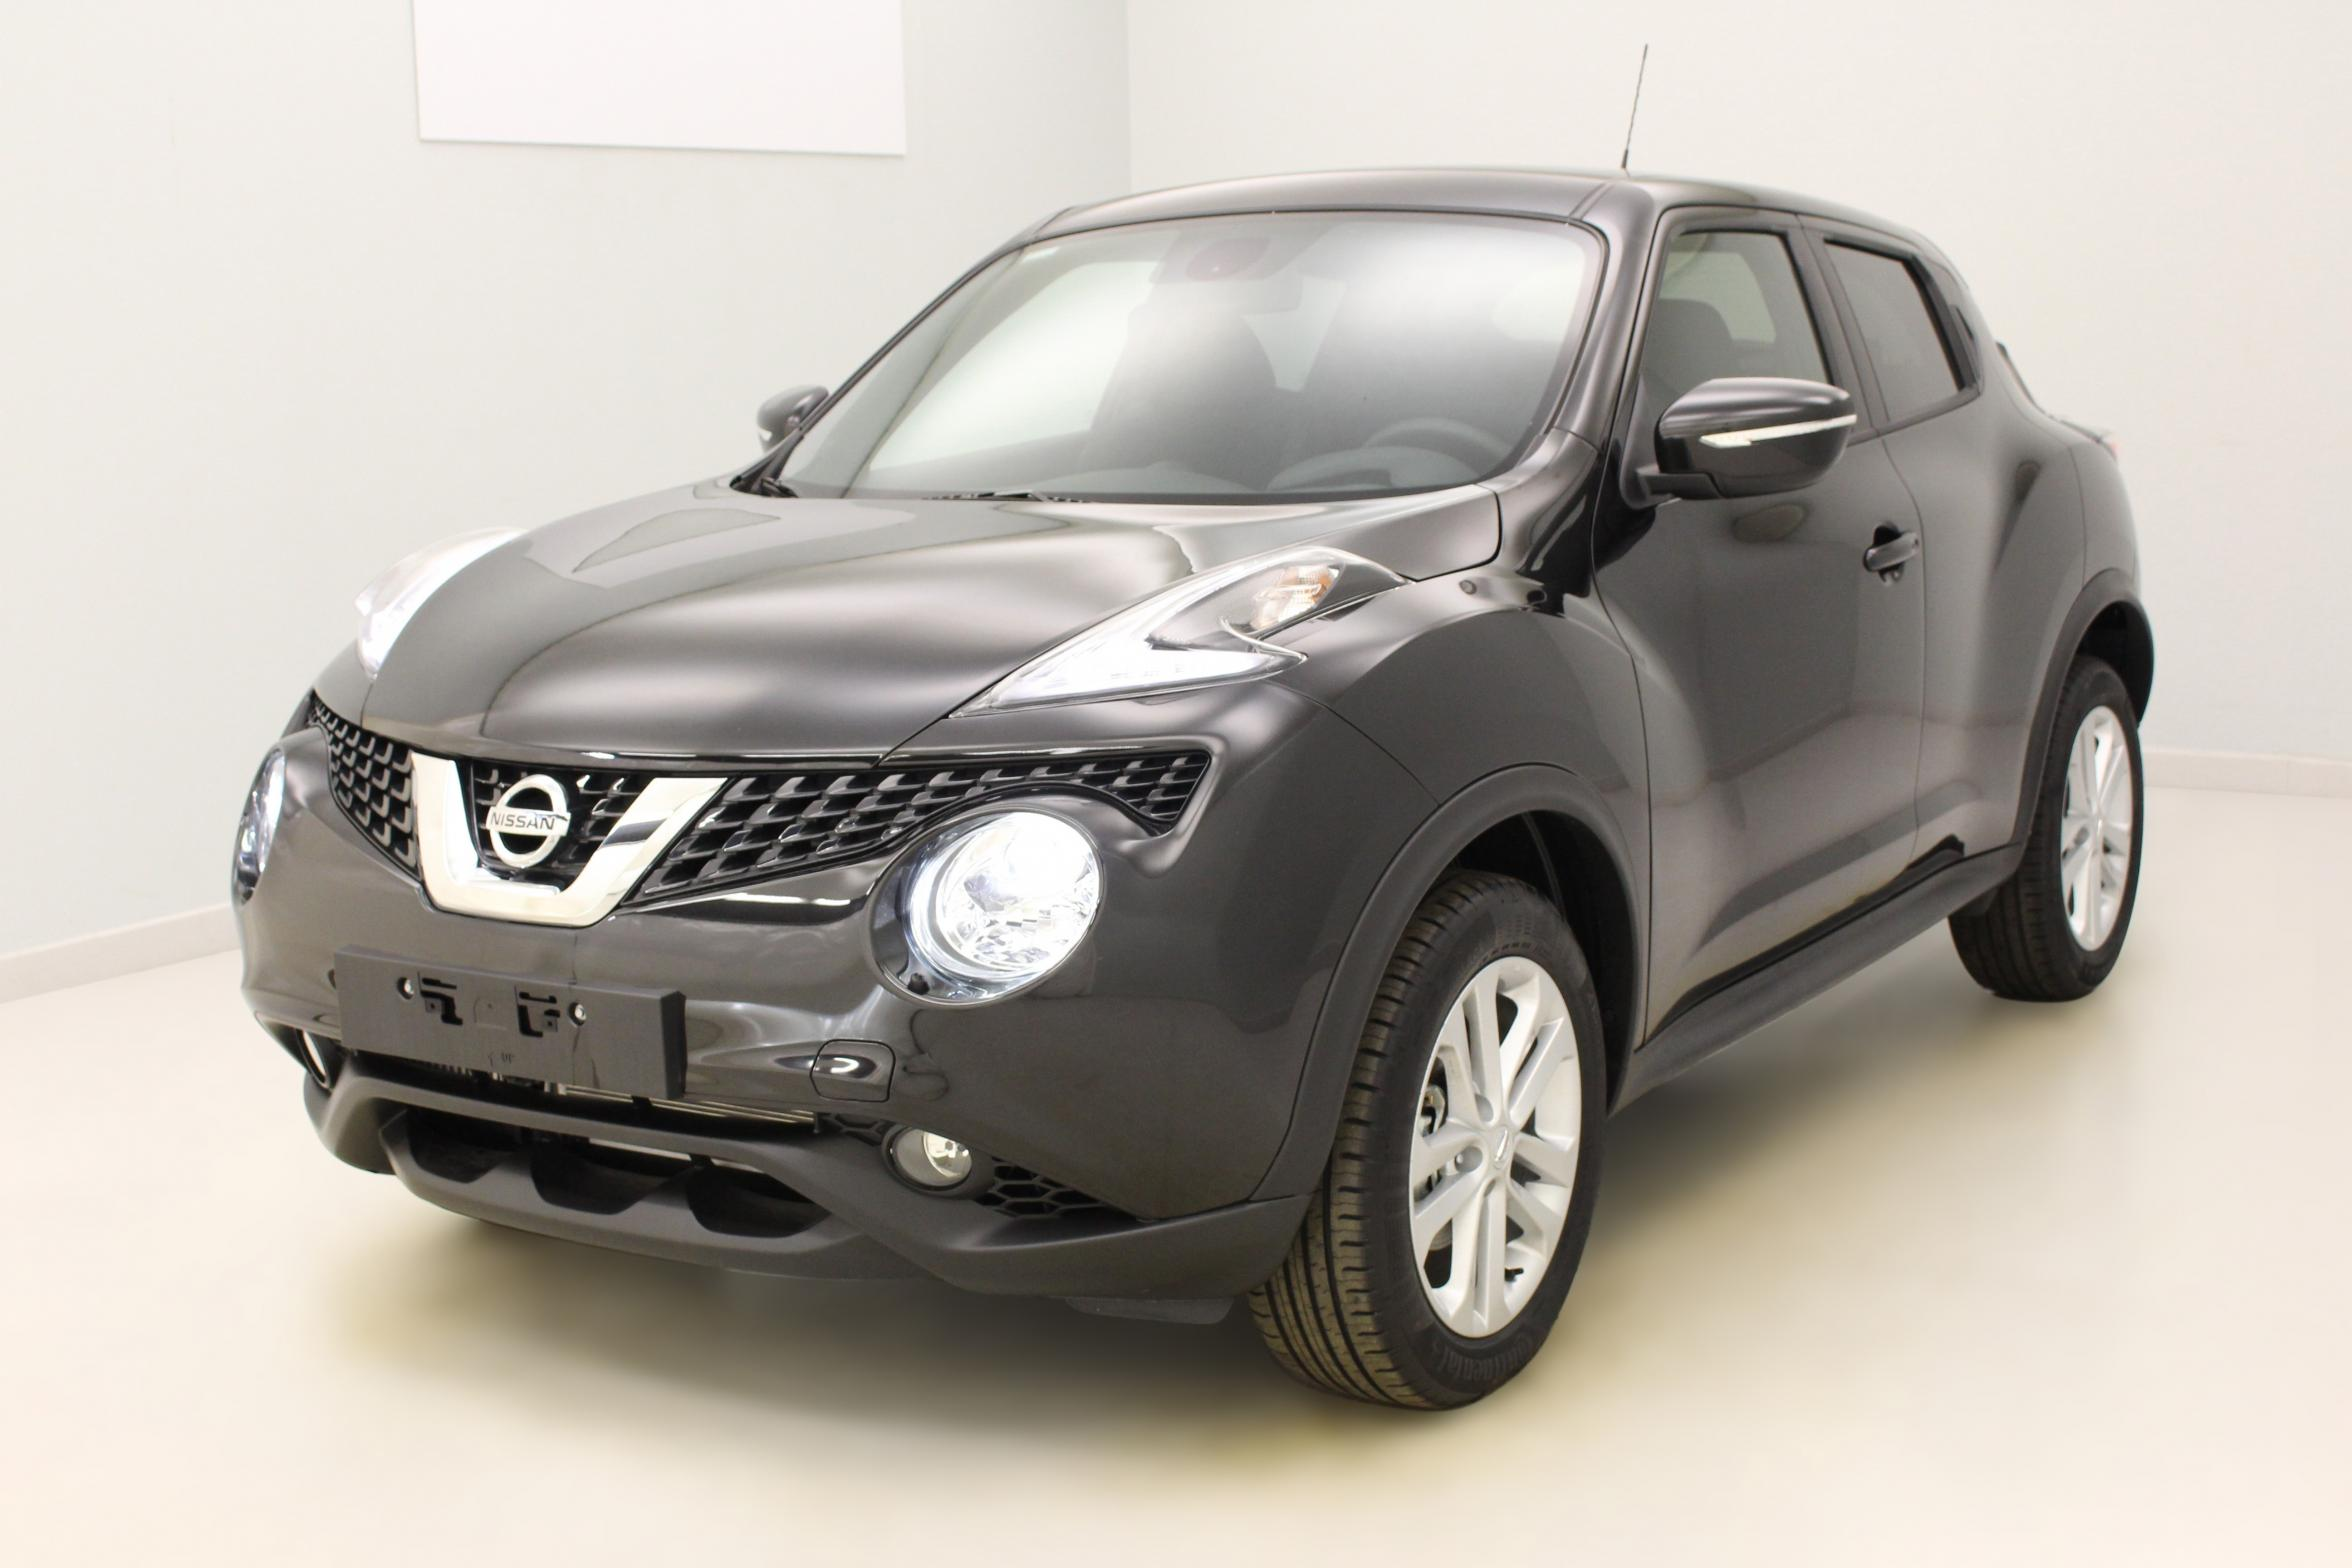 nissan juke 1 5 dci 110 fap start stop system n connecta noir m tallis phares au x non avec. Black Bedroom Furniture Sets. Home Design Ideas